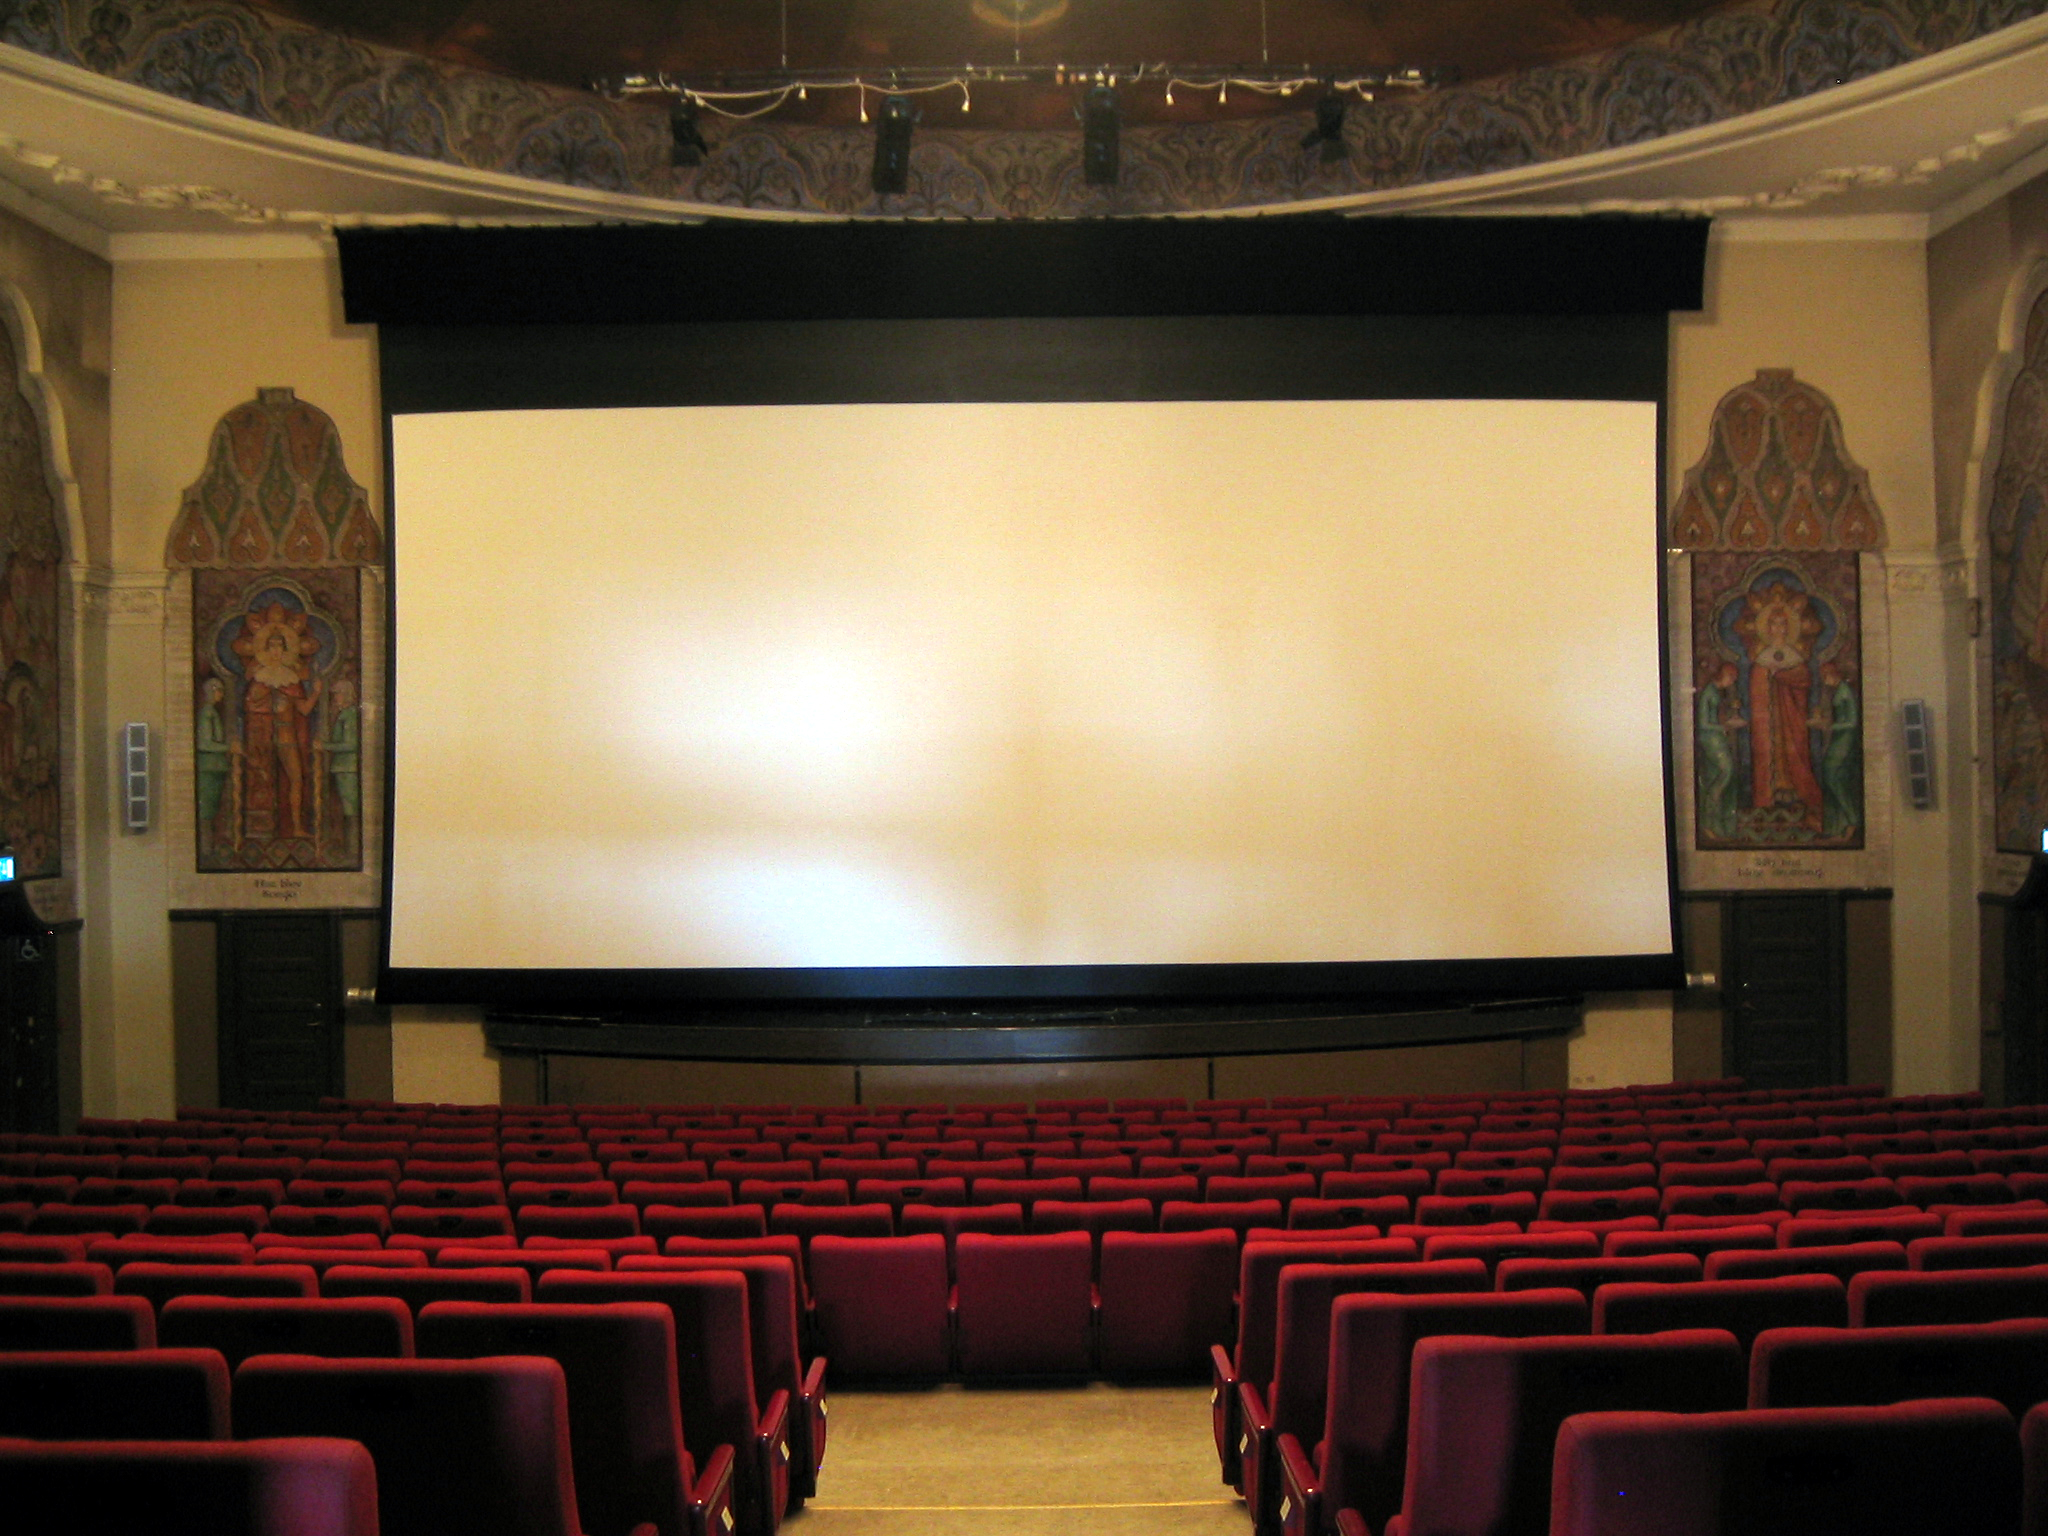 Film audiences are typically seated in comfortable chairs arranged in close rows before a projection screen. Norway (2005)